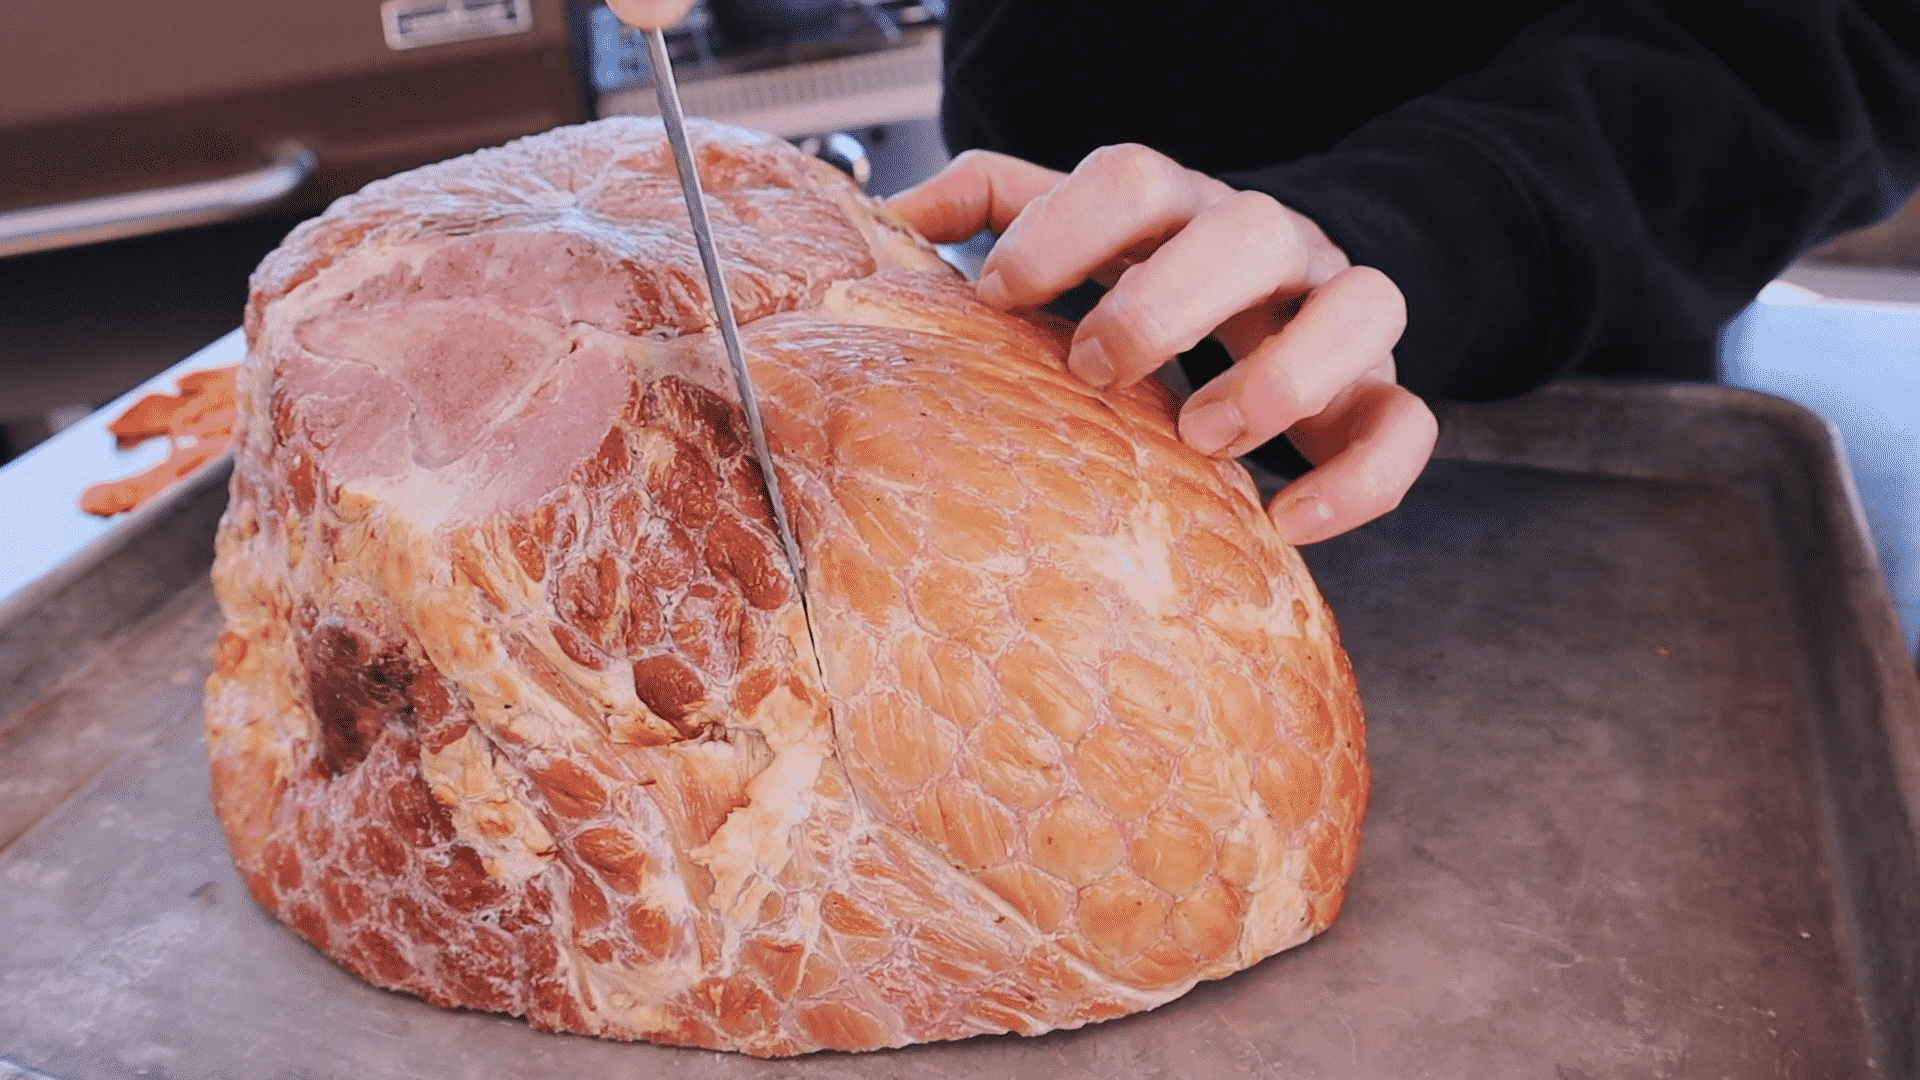 Susie uses a paring knife to make score marks across the surface of a whole picnic ham.